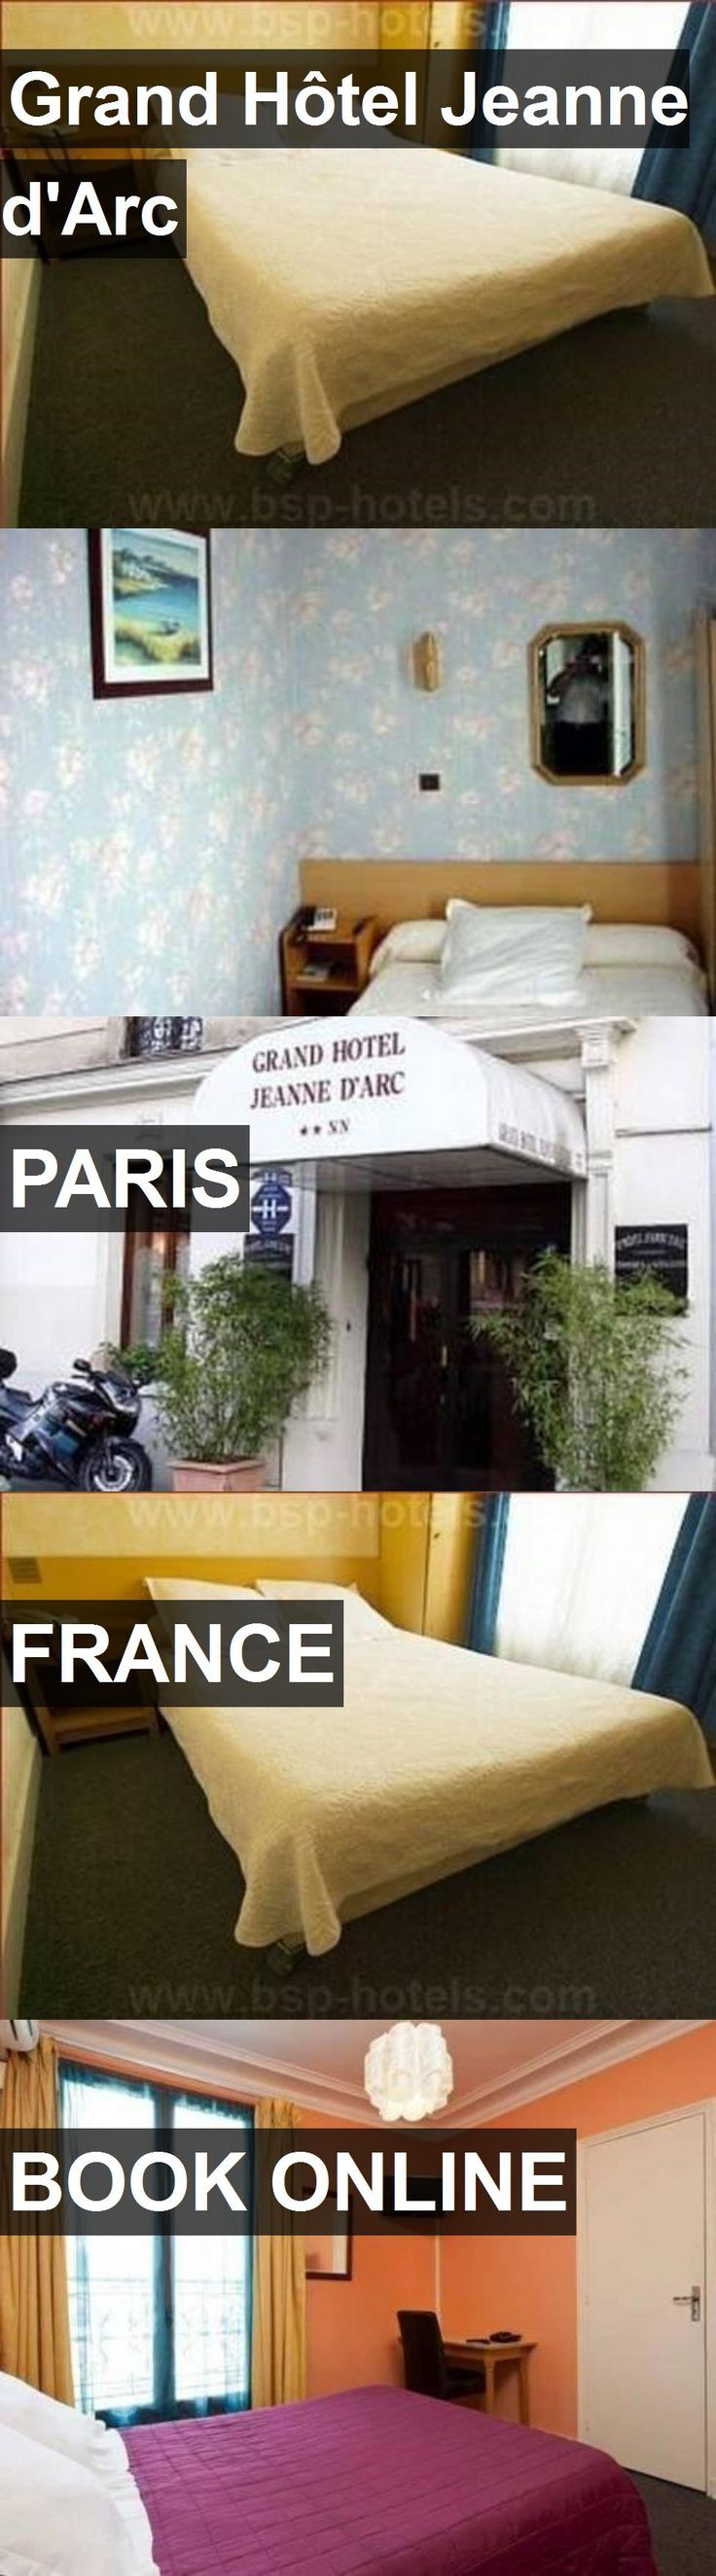 Hotel Grand Hôtel Jeanne d'Arc in Paris, France. For more information, photos, reviews and best prices please follow the link. #France #Paris #hotel #travel #vacation